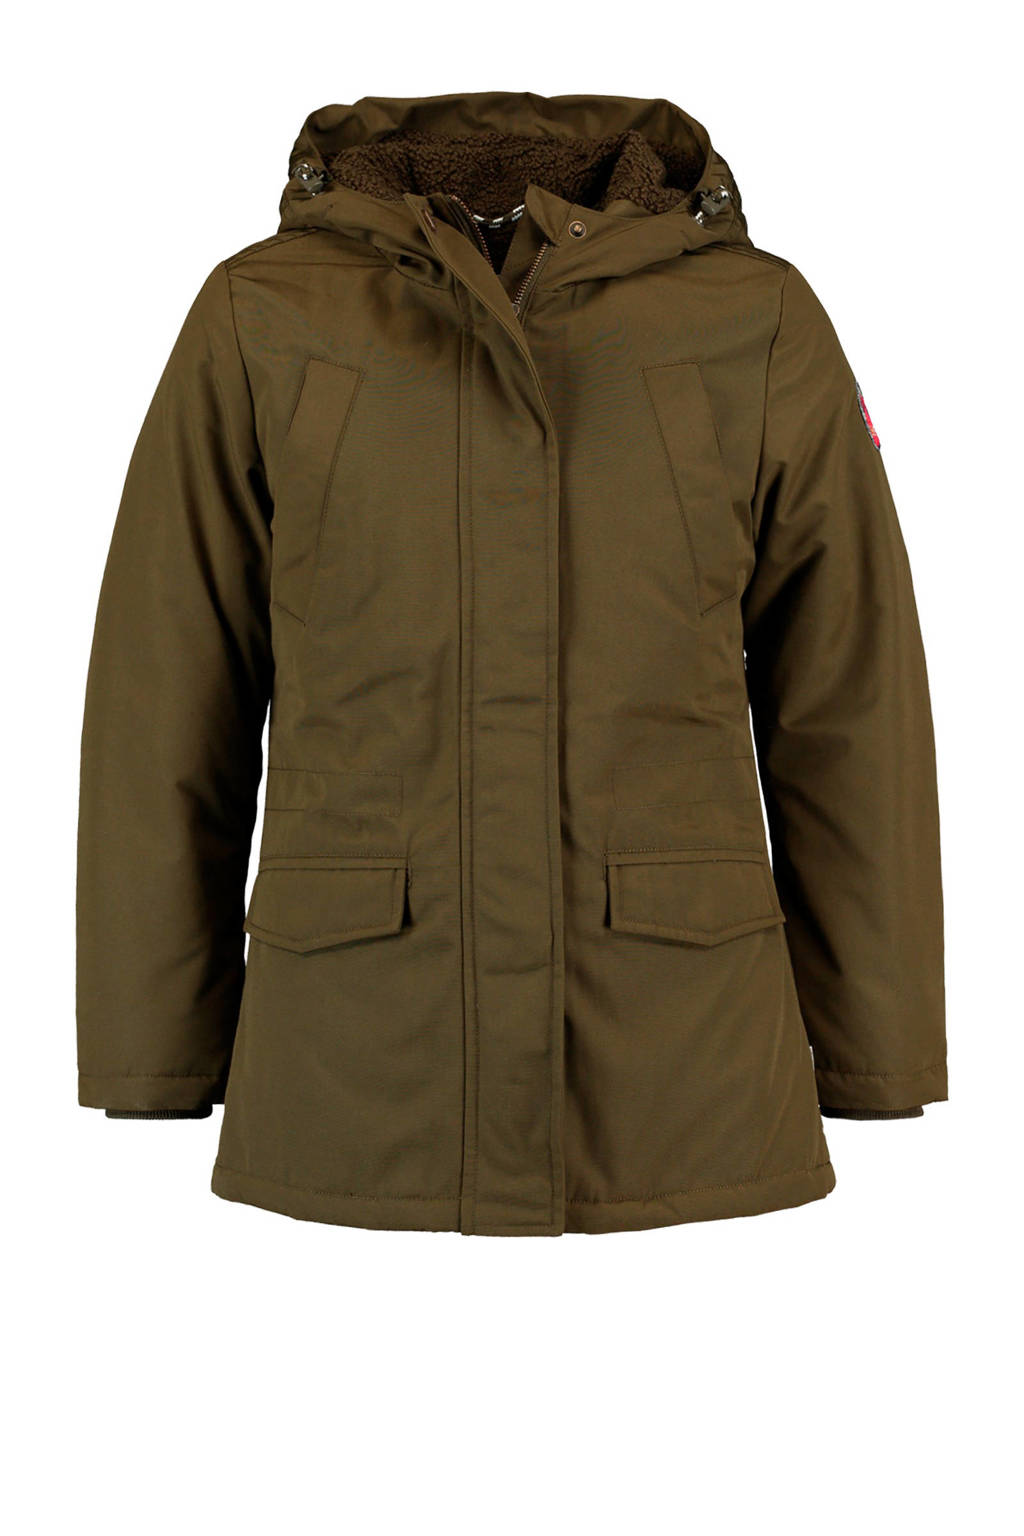 America Today Junior parka Jony army groen, Army groen